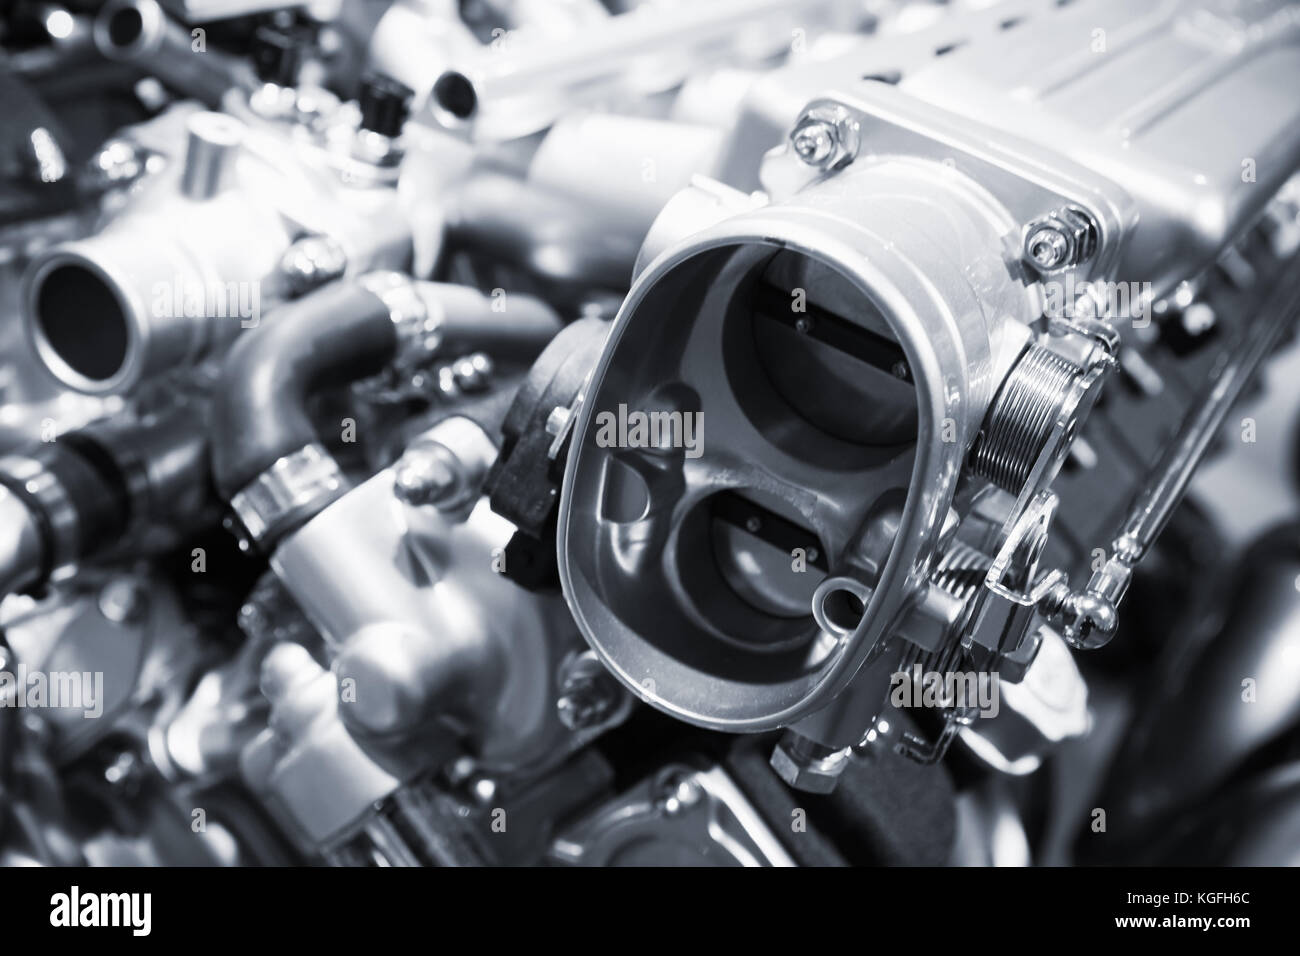 Car Engine Fragment Automobile Motor Stockfotos & Car Engine ...